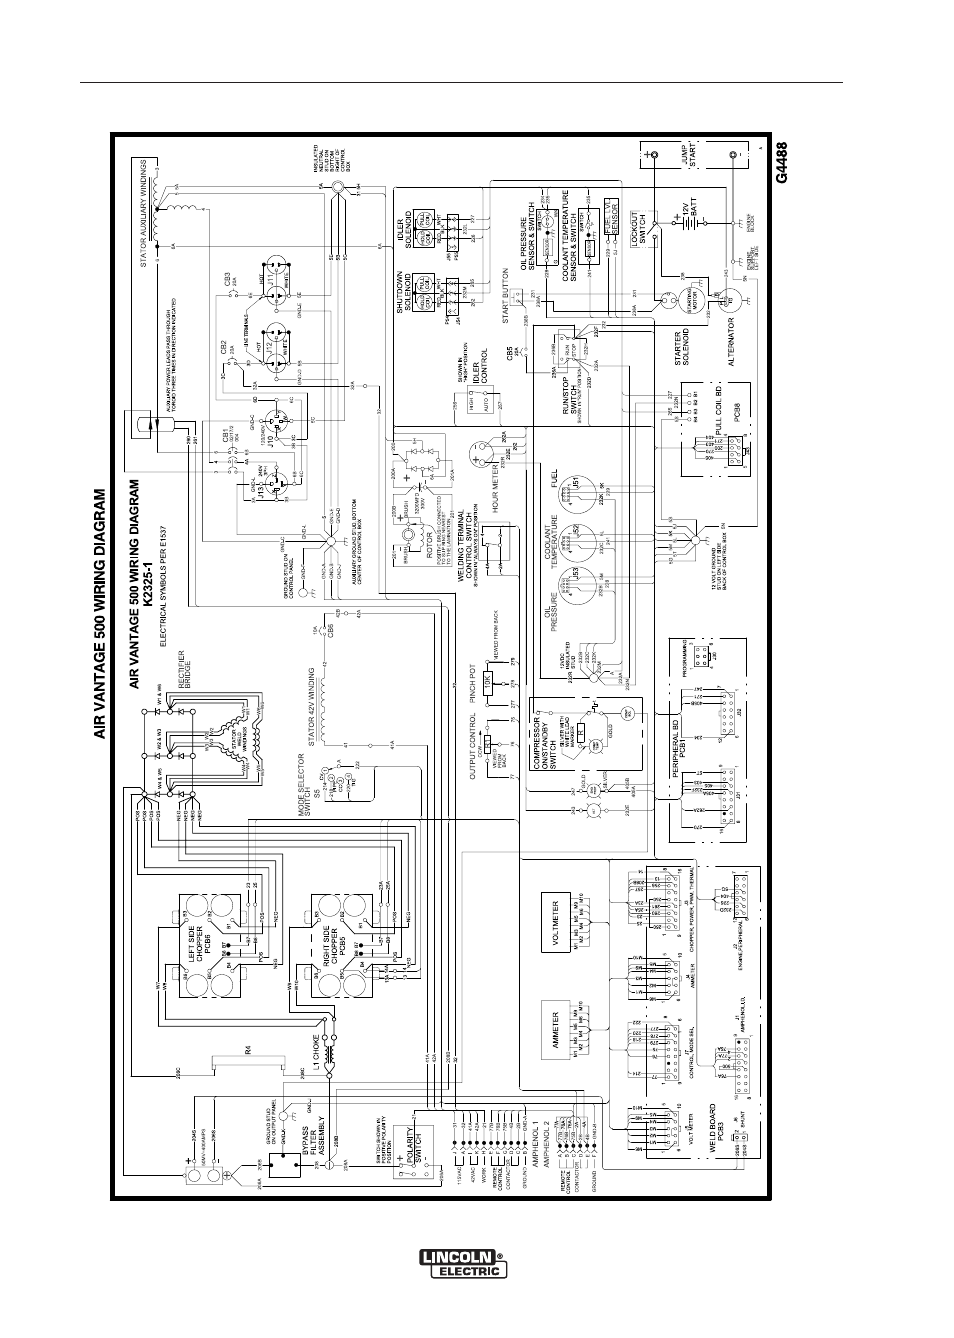 600 X 272 Jpeg 40kb Lincoln Welder Sae 300 Wiring Diagram Caroldoey Lincoln Vantage Wiring Diagram on lincoln sae-400, lincoln commander 300, lincoln lincwelder 225, lincoln pipeliner, lincoln electric welding stickers,